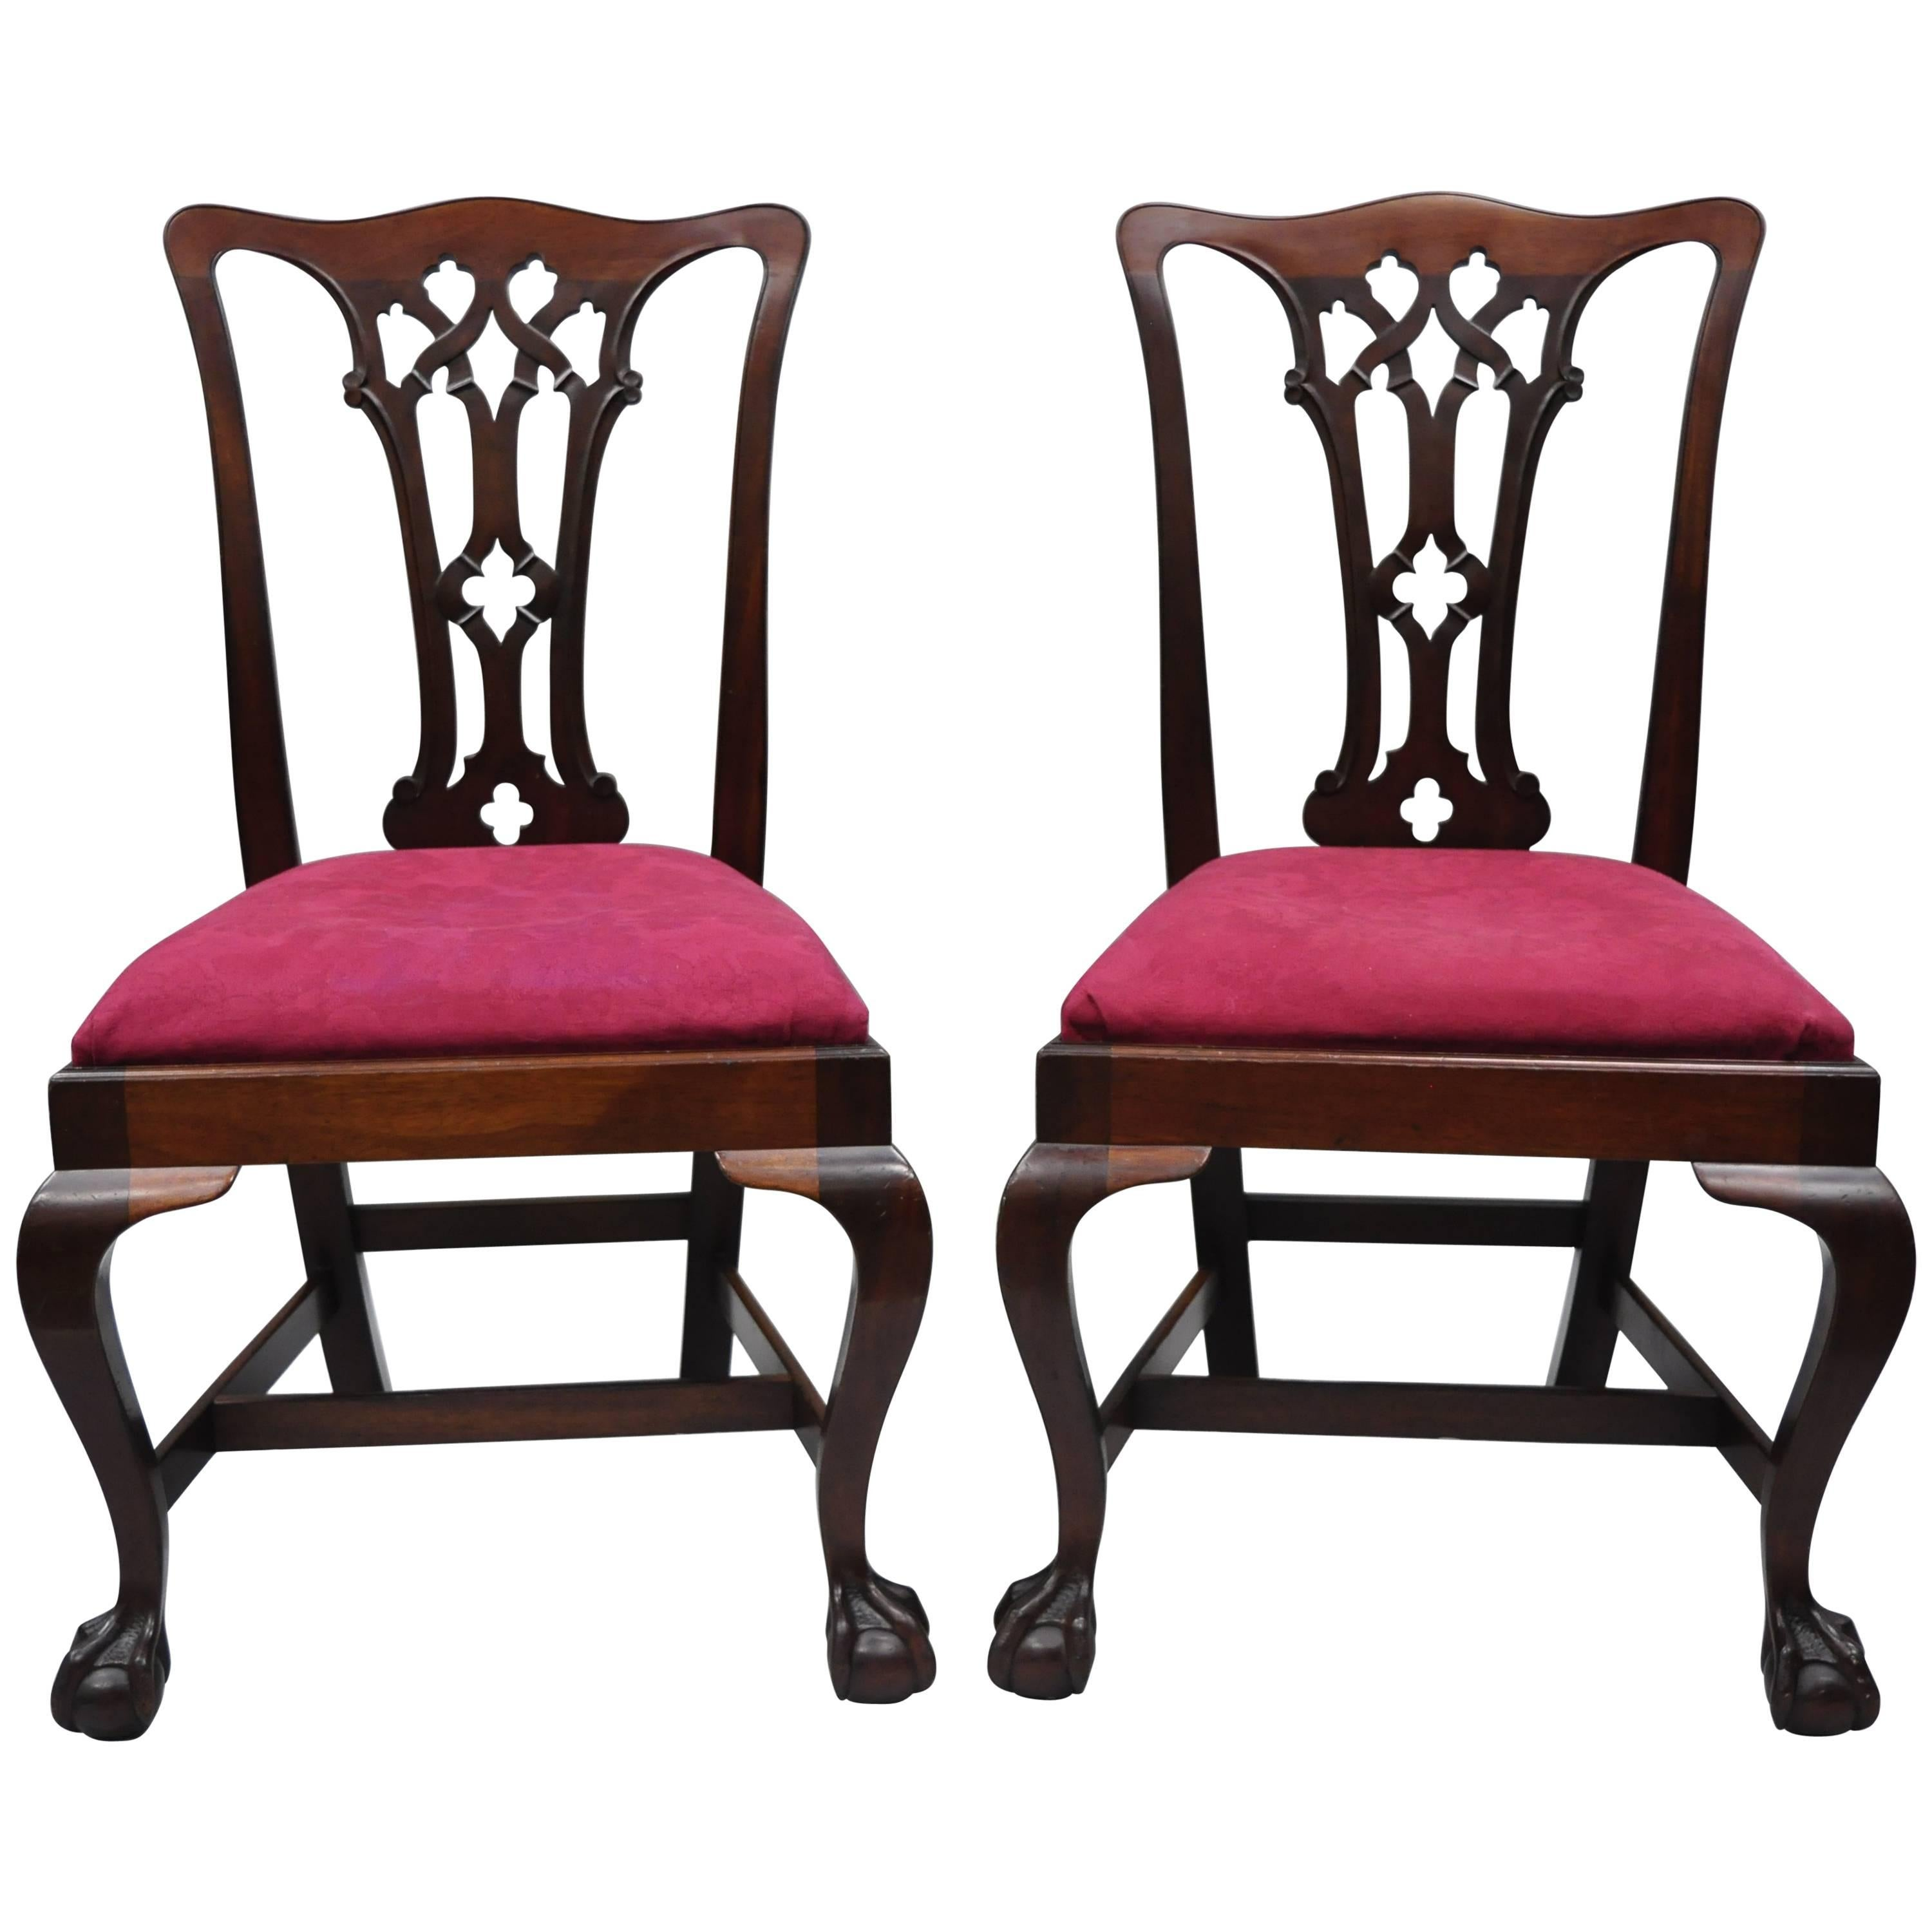 T. Robinson & Sons Makers Antique Solid Mahogany Chippendale Style Side Chairs